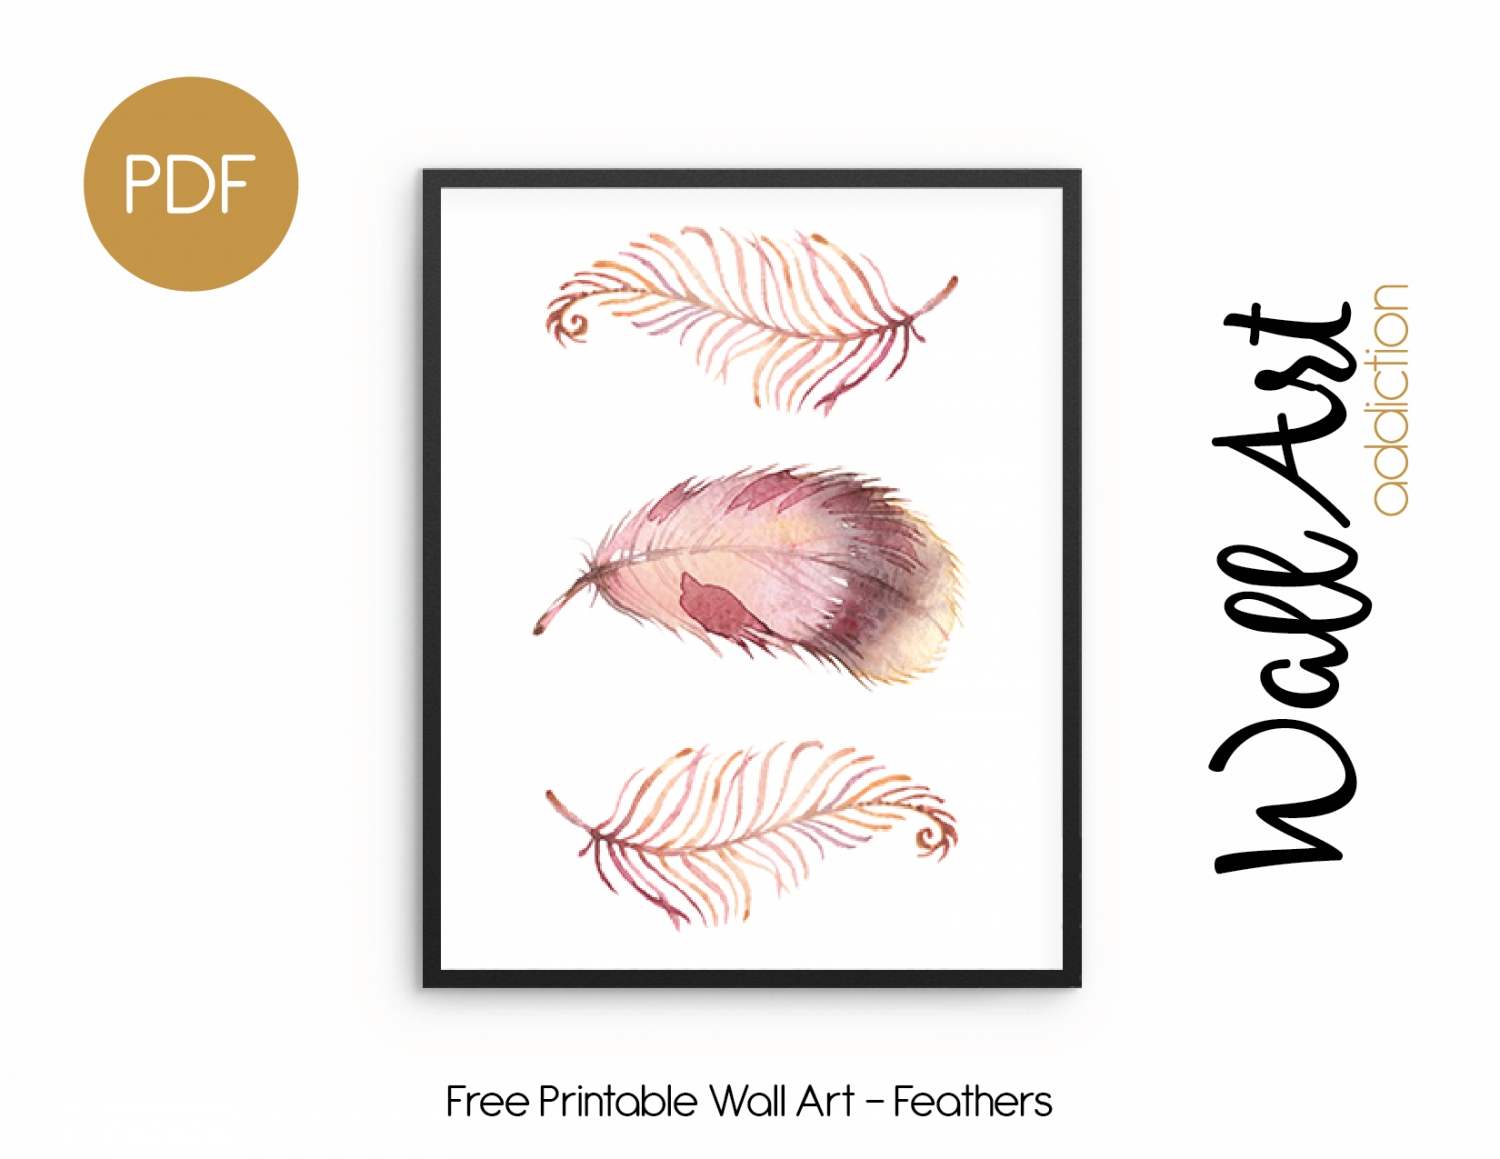 Wall Art Addiction | Feathers Throughout 2017 Free Printable Wall Art (Gallery 1 of 20)